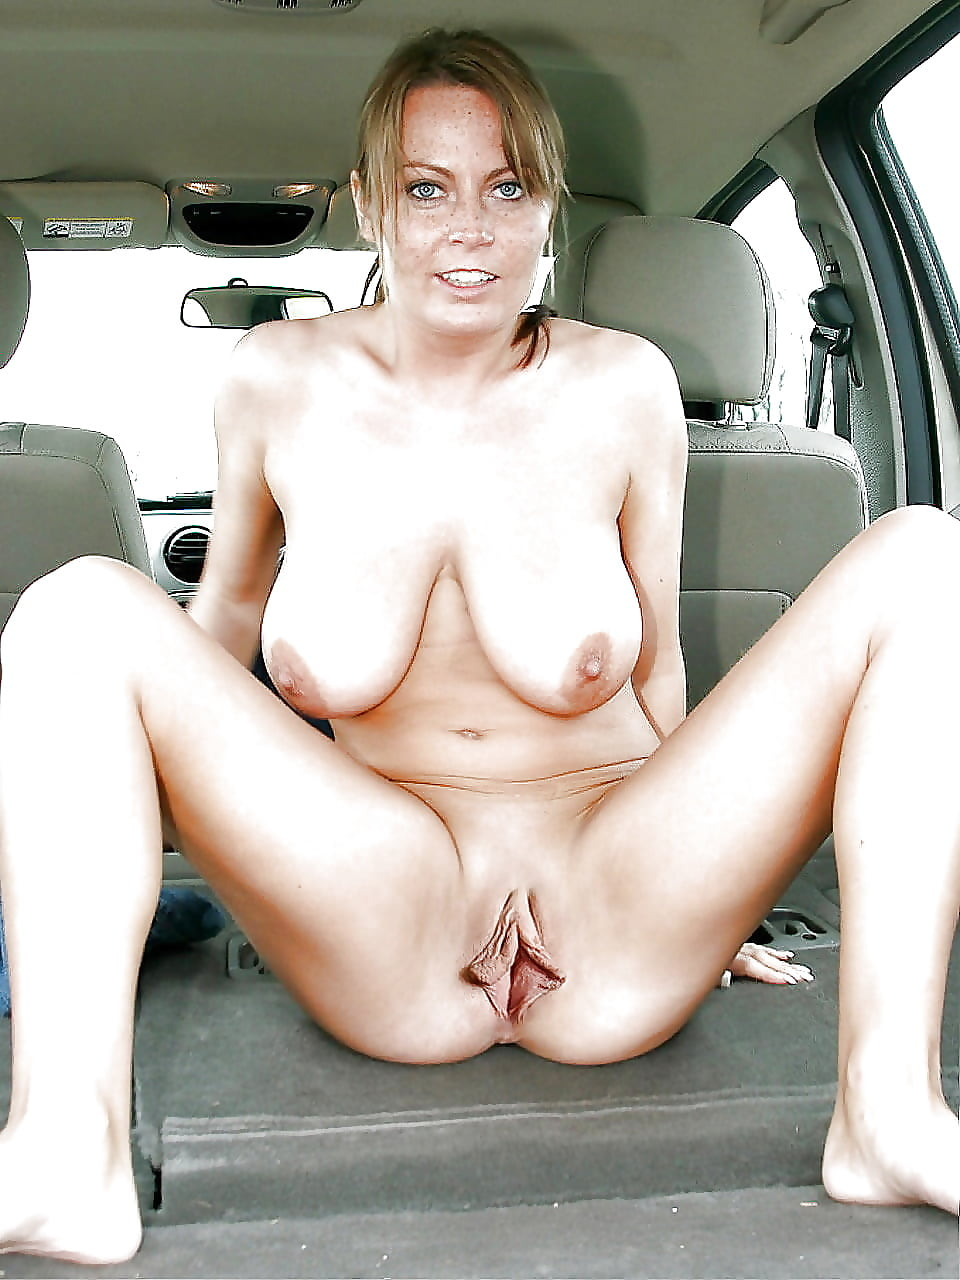 Rachel Brunette Milf Movieked Up And Fat Wife Blonde Huge Tits